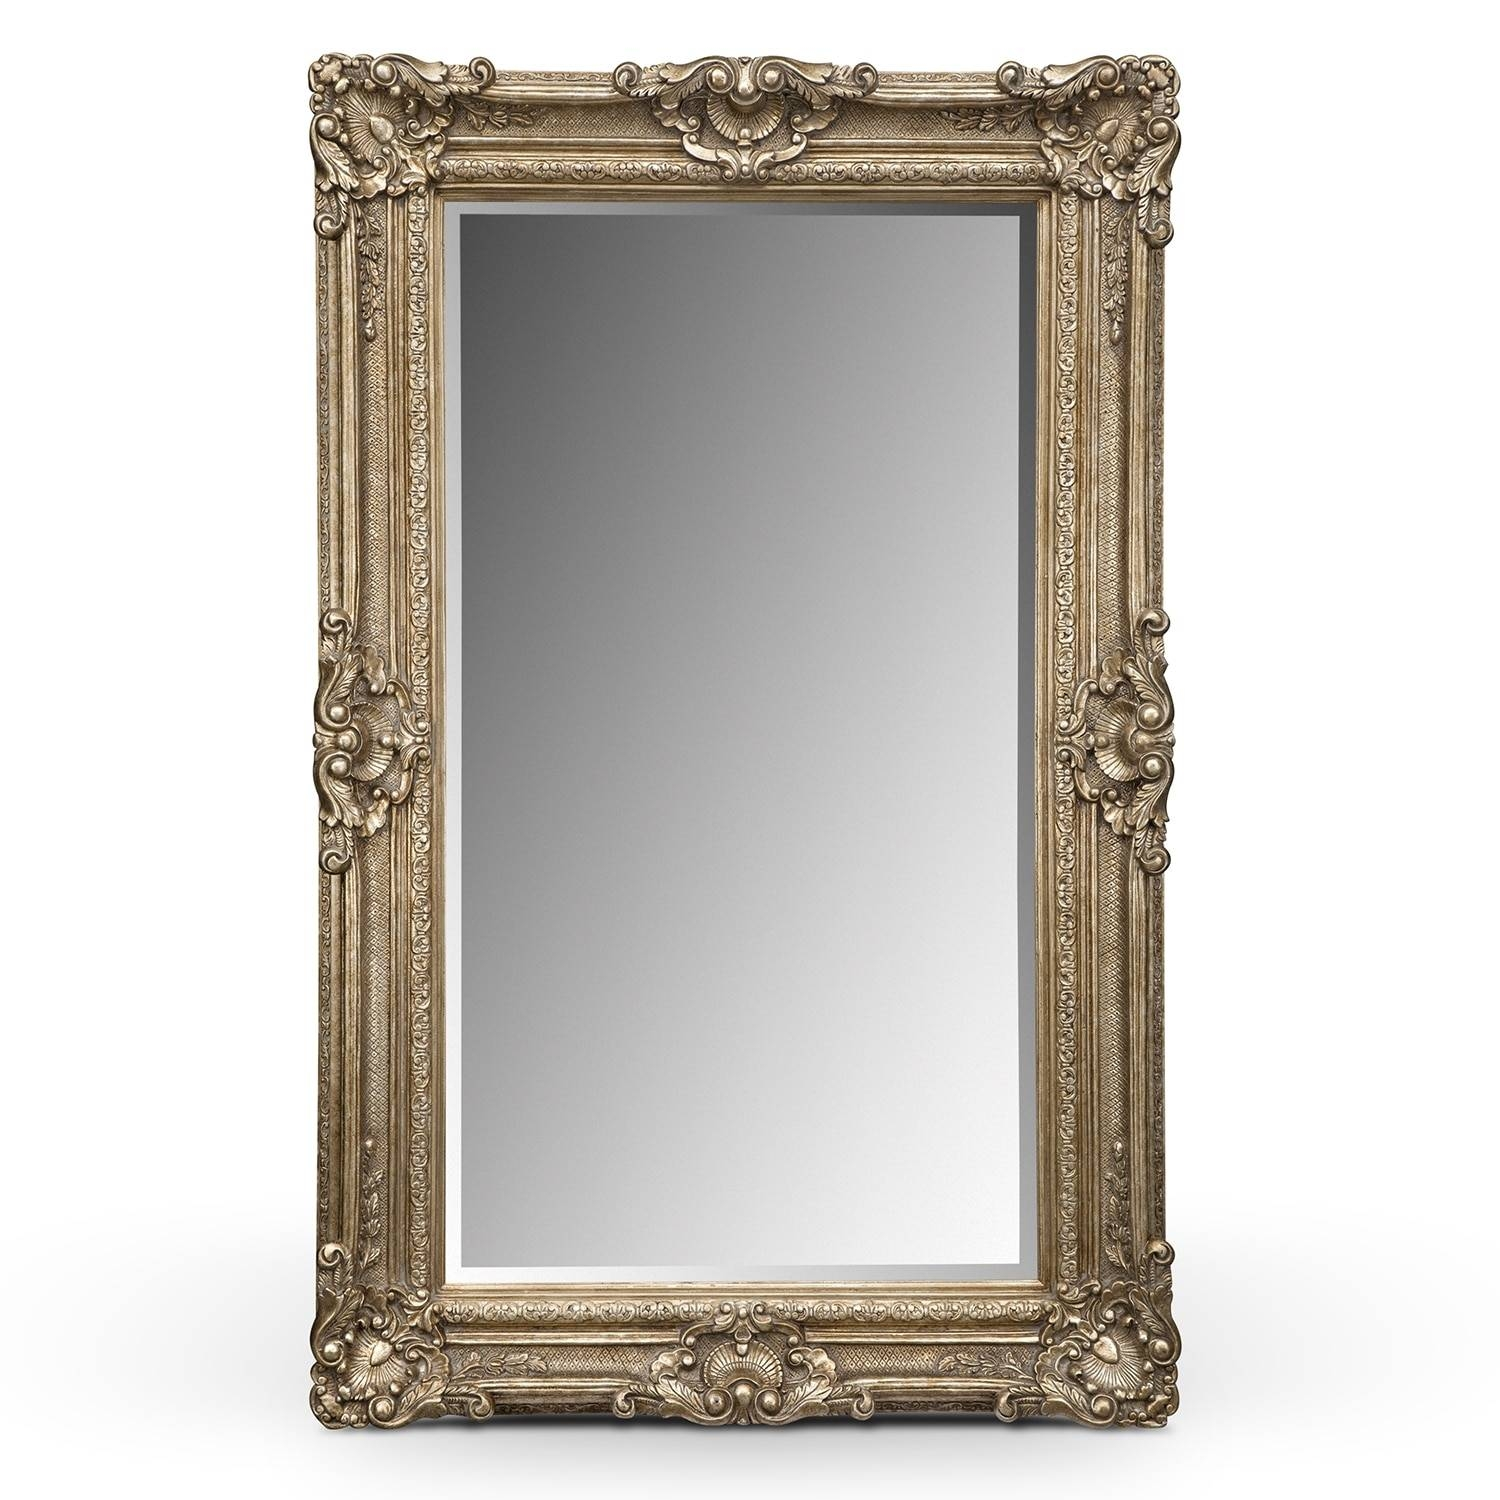 Silver Antique Floor Mirror | Value City Furniture In Silver Antique Mirrors (View 17 of 25)